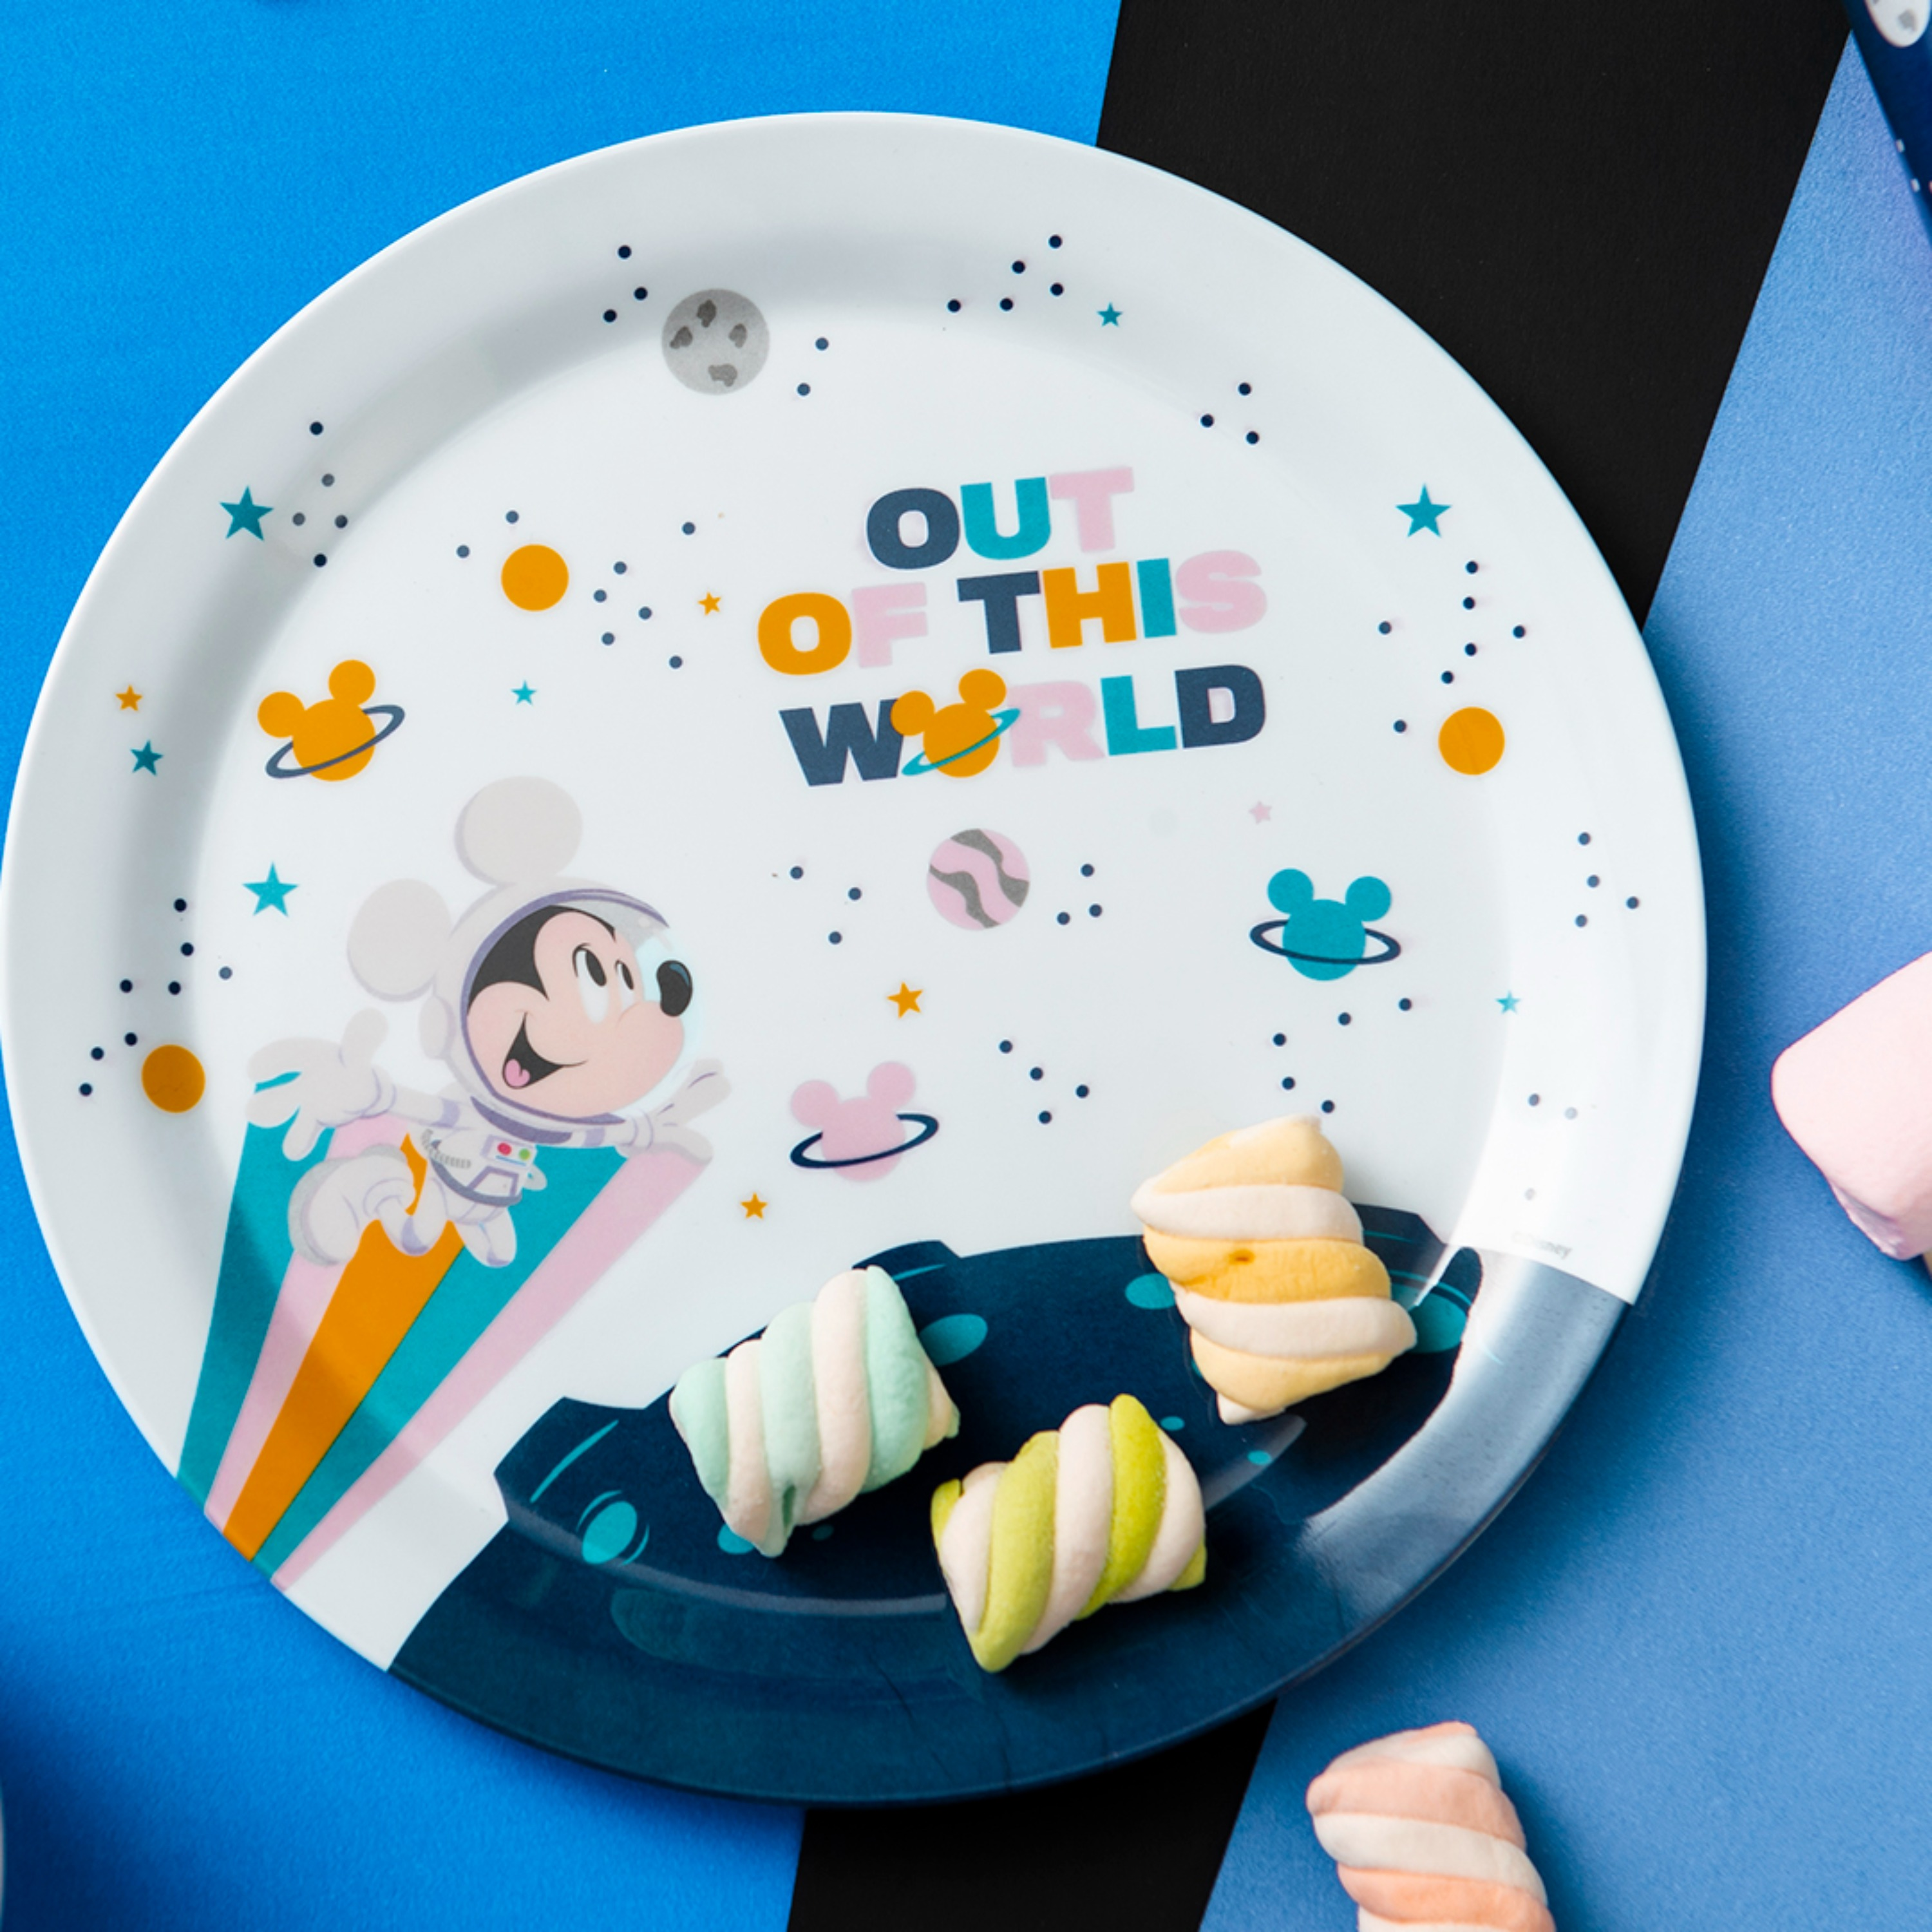 Disney Plate, Bowl, Tumbler and Flatware Set, Outer Space Mickey Mouse, 5-piece set slideshow image 5